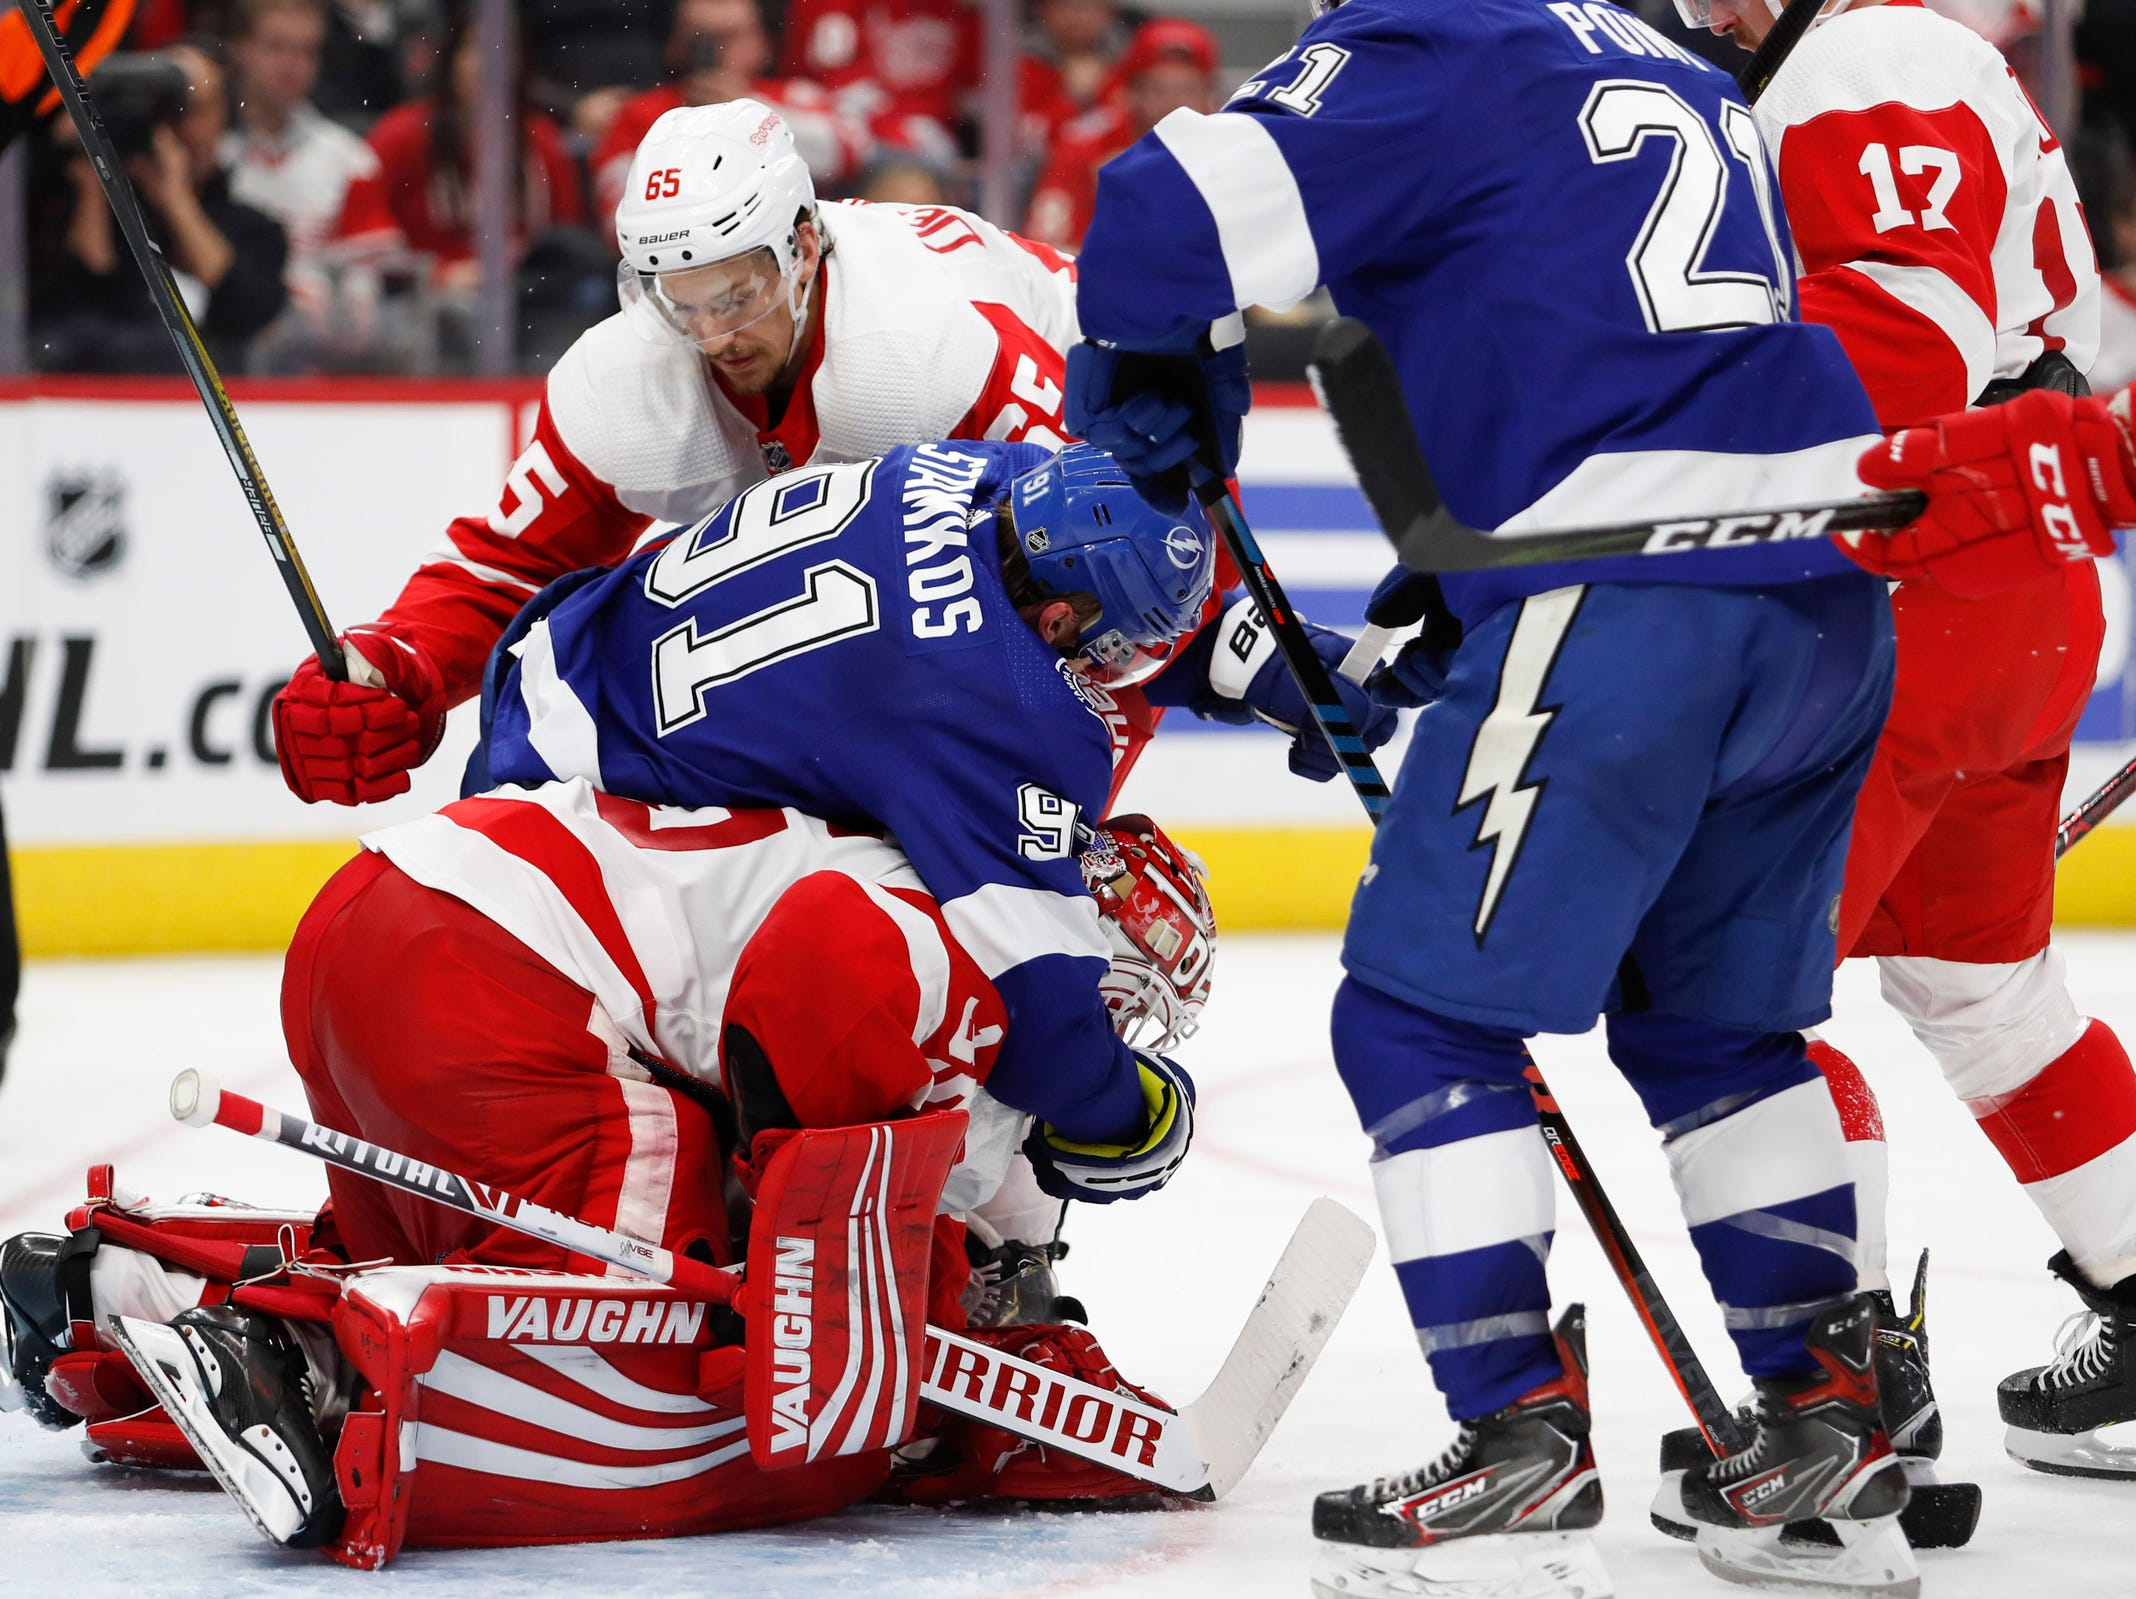 Lightning center Steven Stamkos falls on the back of Red Wings goaltender Jimmy Howard as he is defended by defenseman Danny DeKeyser during the third period of the Wings' 5-4 loss to the Lightning on Thursday, March 14, 2019, at Little Caesars Arena.